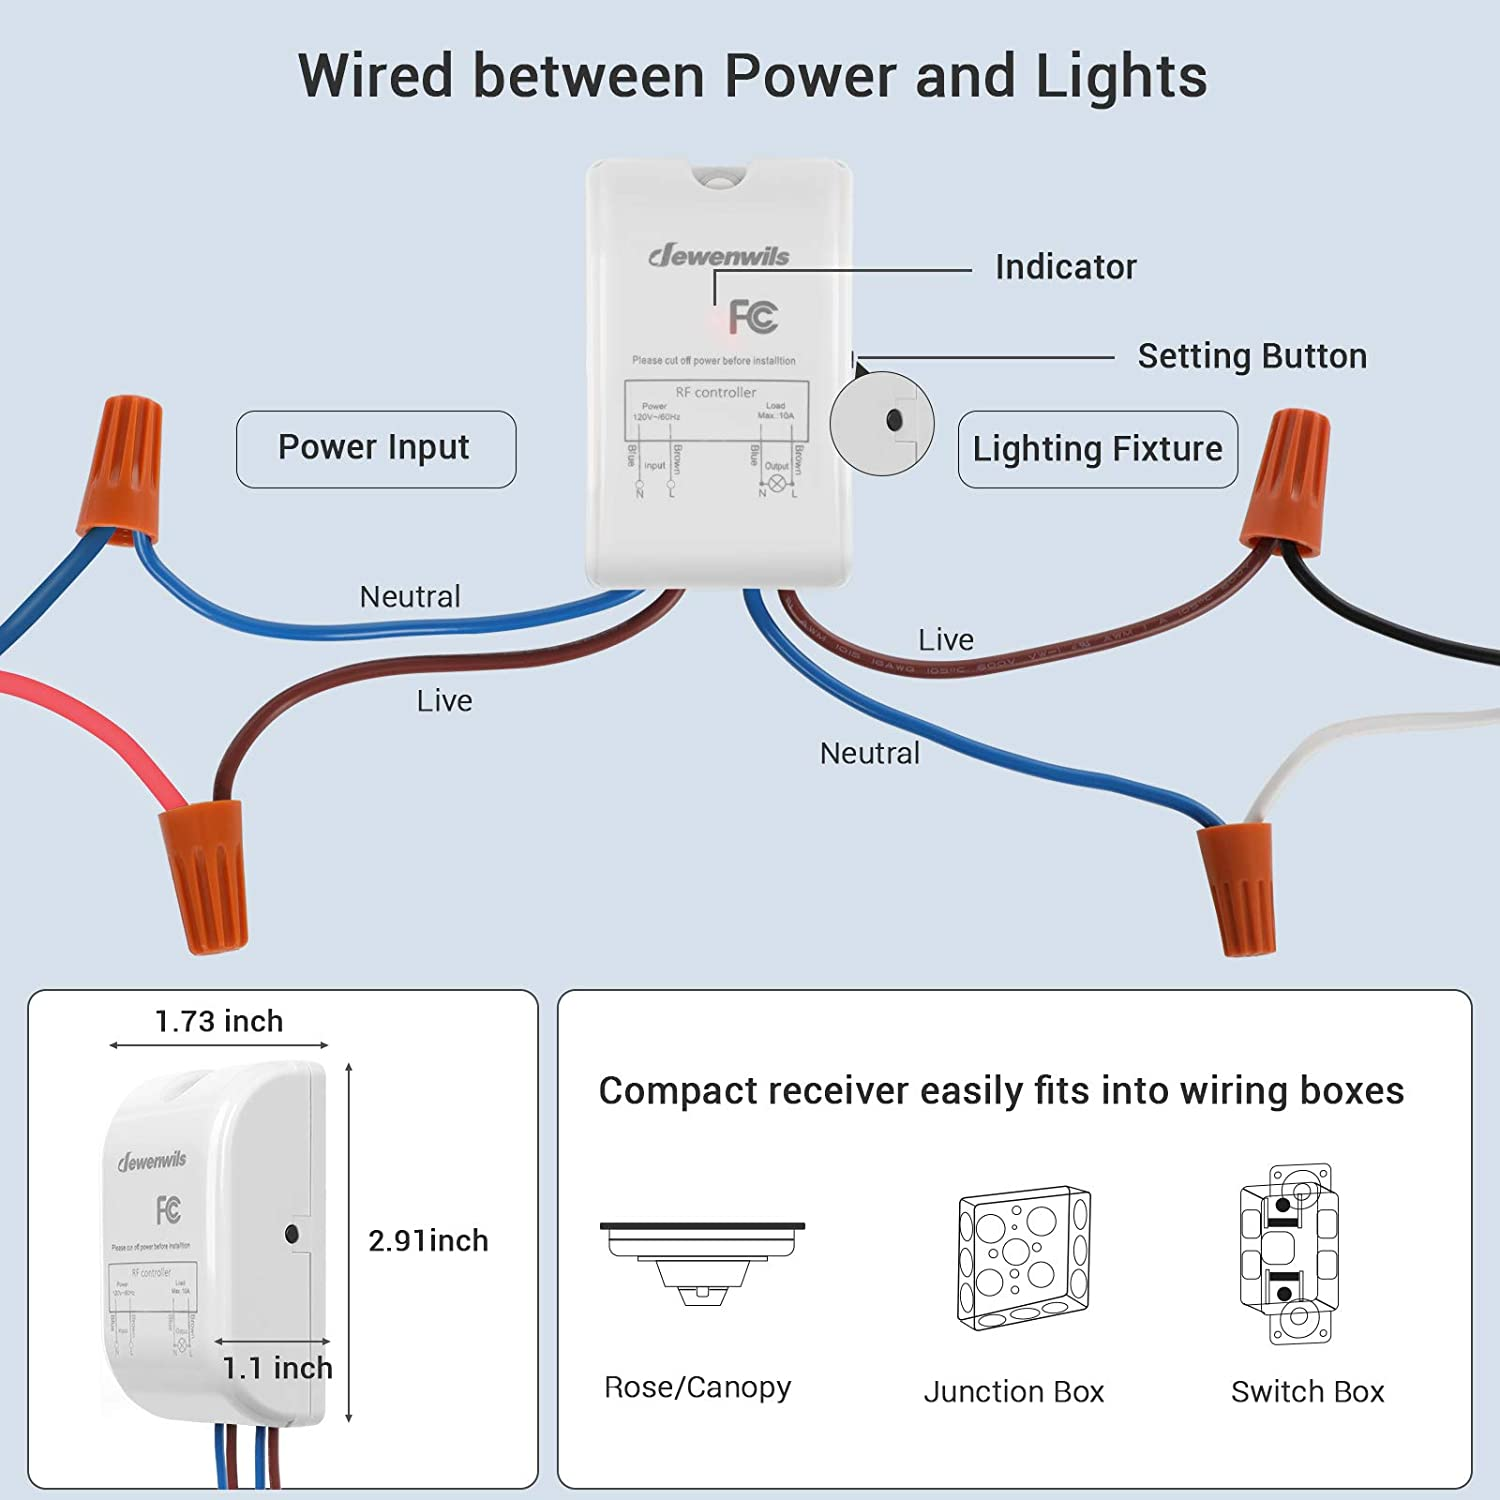 DEWENWILS Wireless Light Switch and Receiver Kit, Wall Switch Remote  Control Lighting Fixture for Ceiling Lights, Fans, Lamps, No in-Wall Wiring  Required, 100 Ft RF Range, Programmable: Amazon.com: Industrial & ScientificAmazon.com